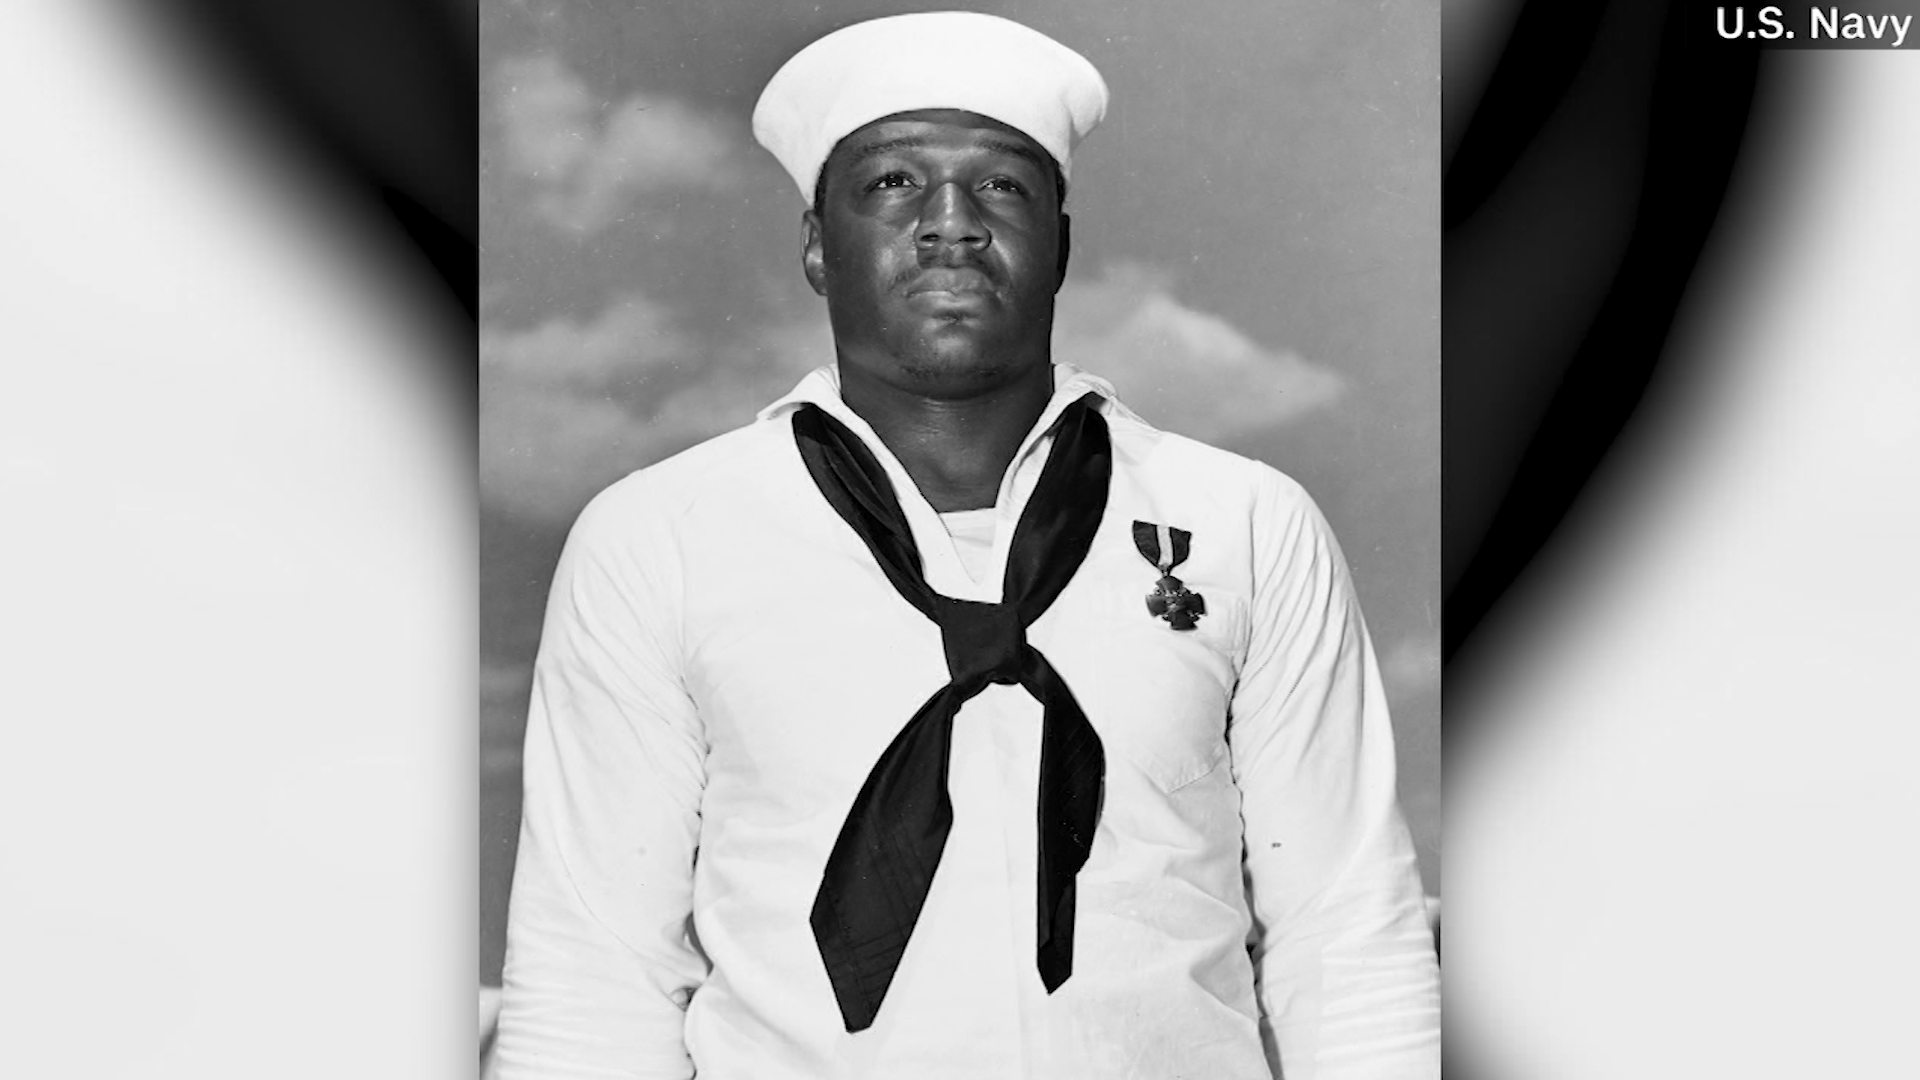 Navy to name new aircraft carrier for African American WWII hero